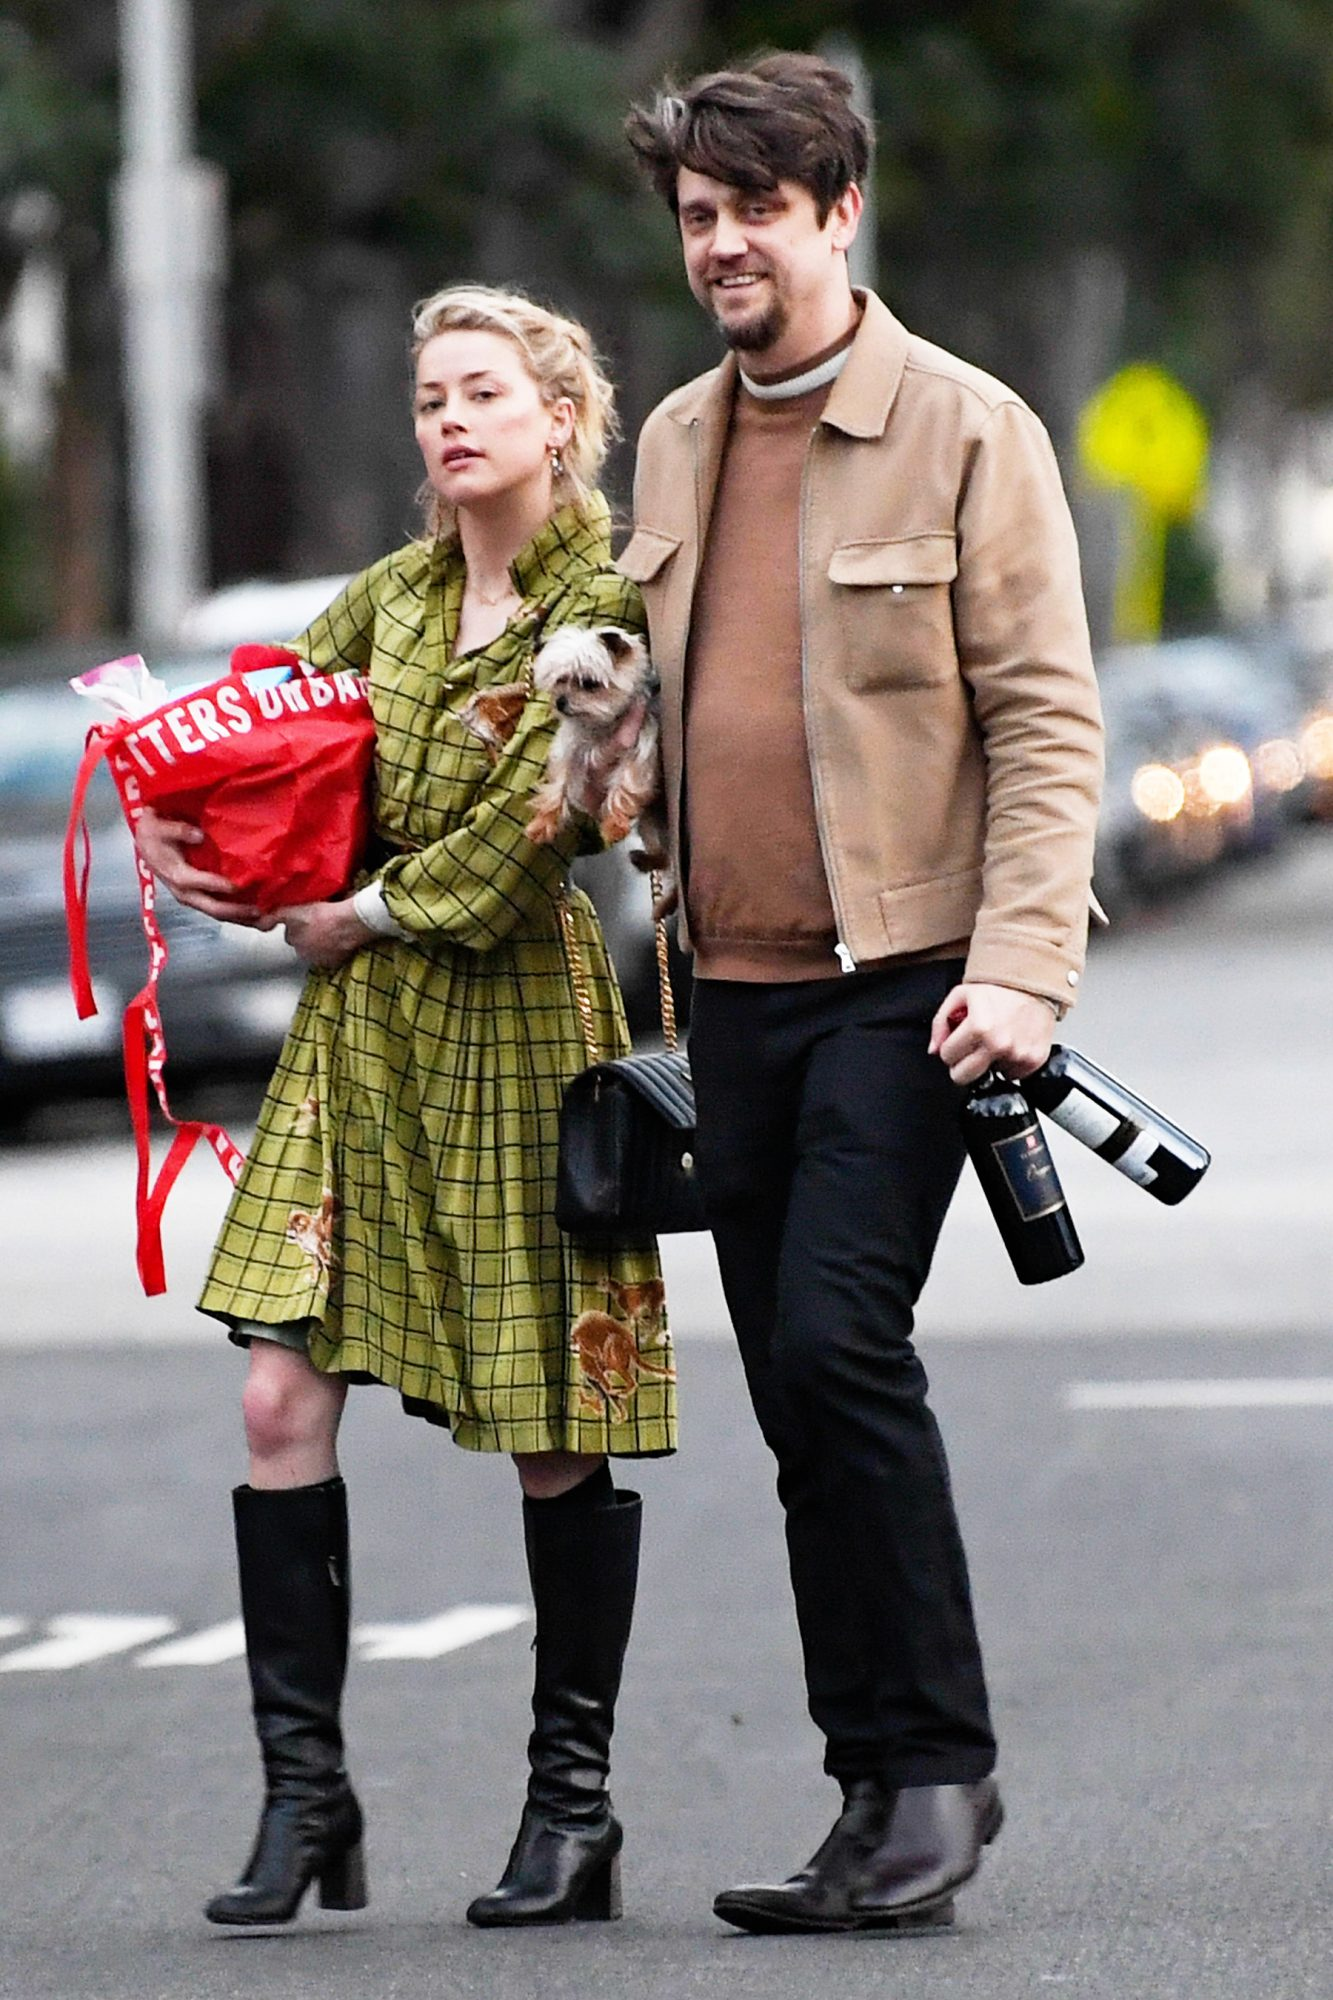 EXCLUSIVE: Amber Heard and boyfriend Andy Muschietti head to a friend's home for the evening